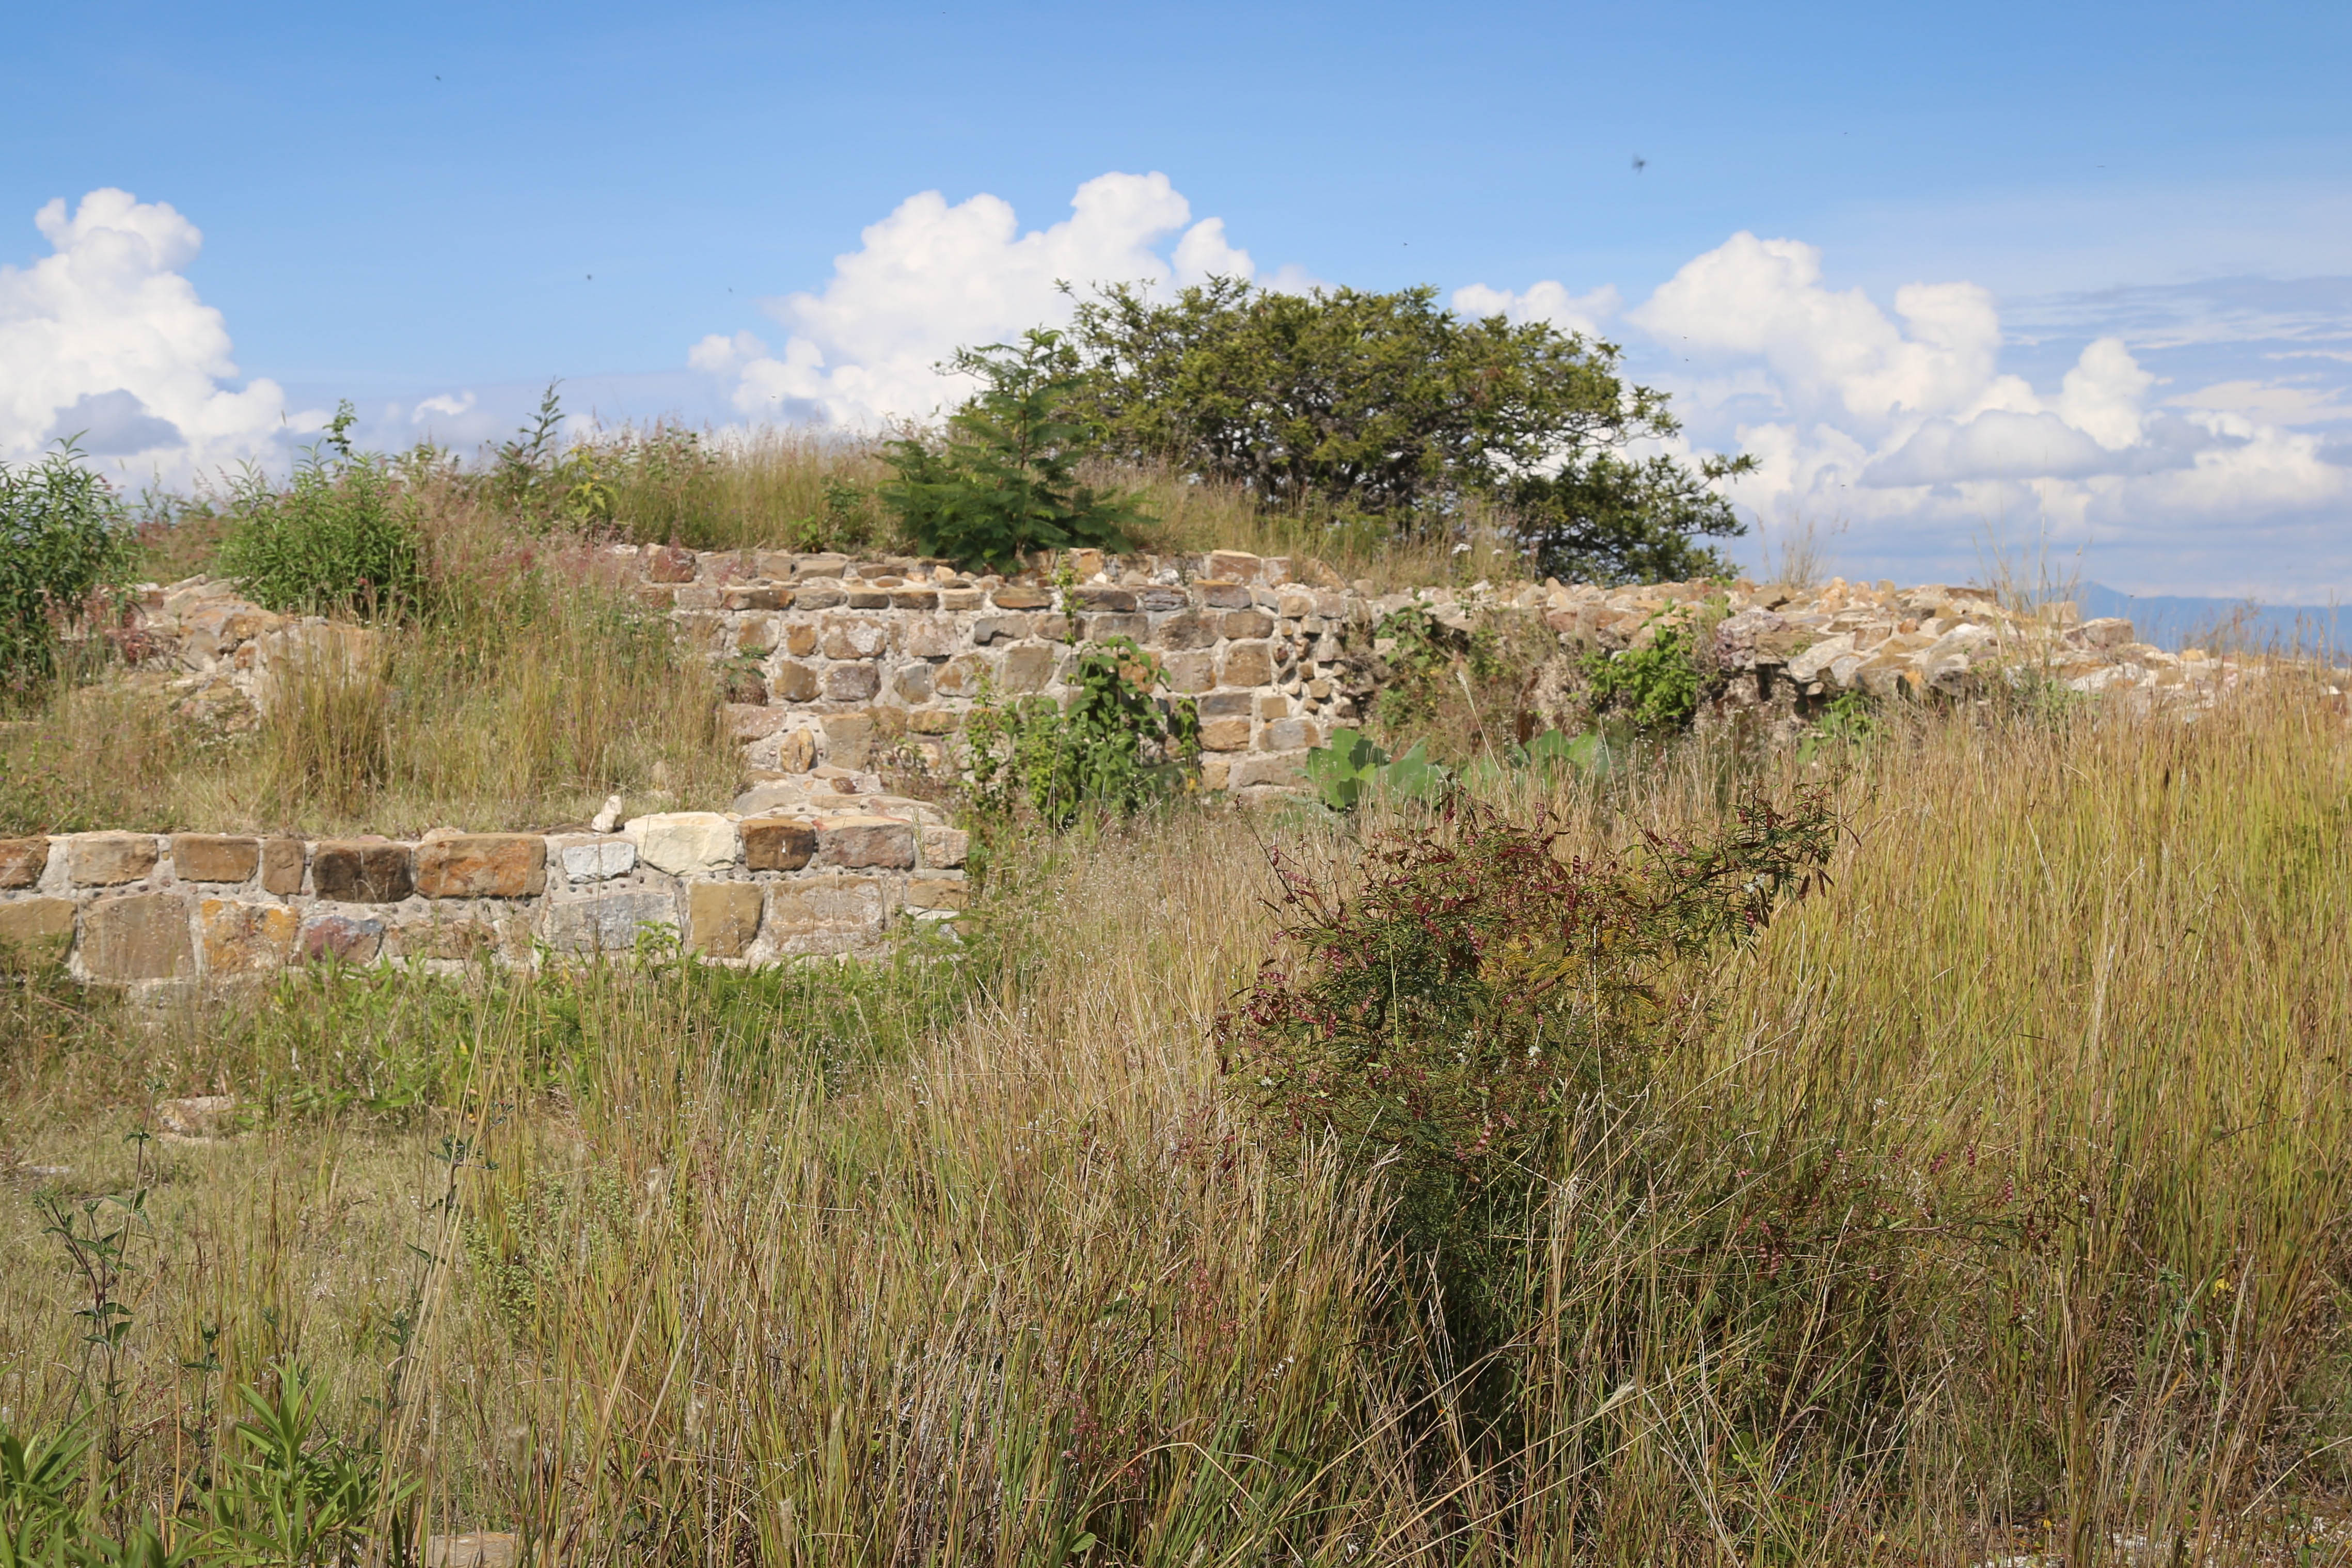 There are places throughout Monte Alban where buildings and pieces of the site are being restored.